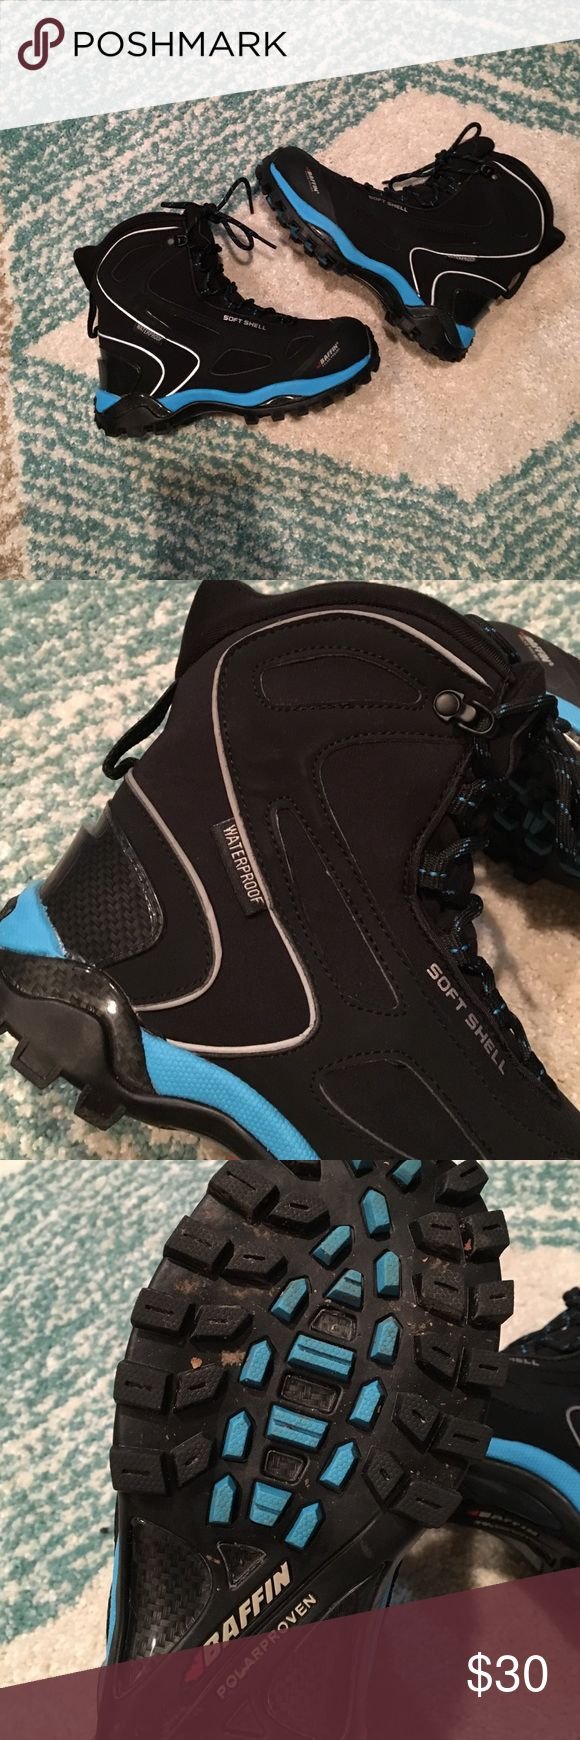 Baffin Snotrek Boots - Size 7 Baffin snow boots - Size 7, Bright blue & black, worn 3 times Baffin Shoes Winter & Rain Boots